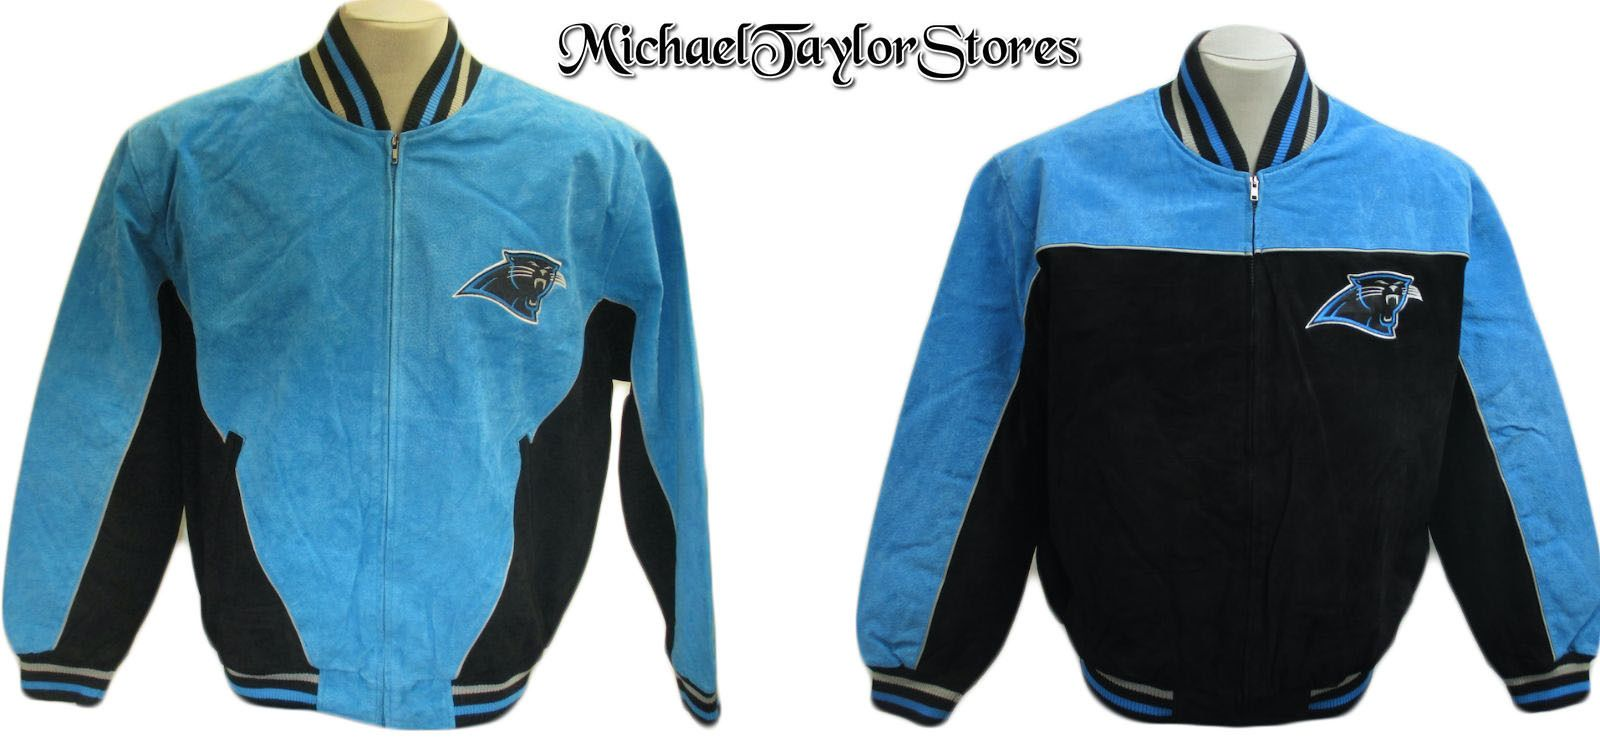 separation shoes 633f4 50809 Details about Carolina Panthers Men's Full-Zip Polyester ...